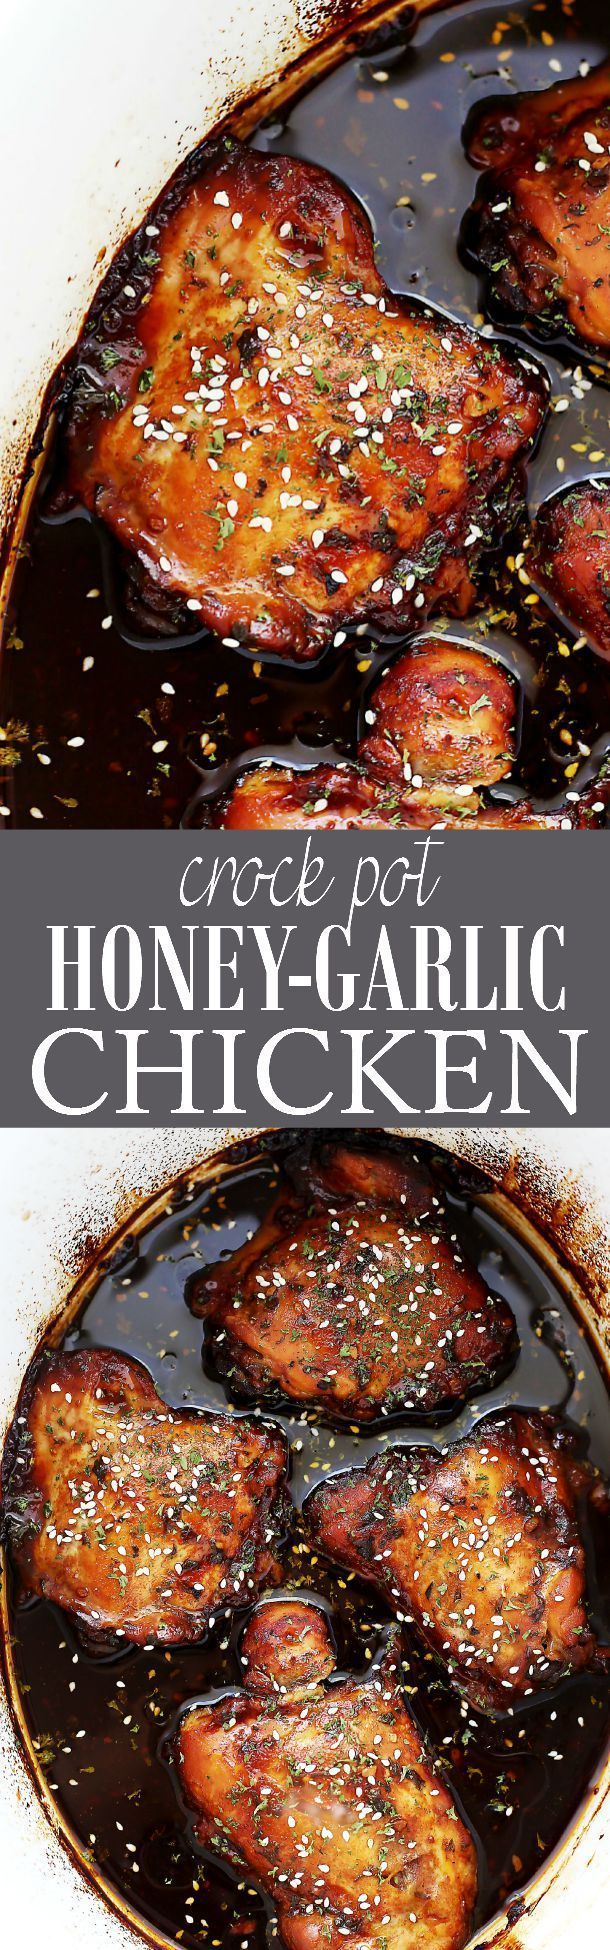 Crock Pot Honey-Garlic Chicken | Easy crock pot recipe for chicken thighs cooked in an incredibly delicious honey-garlic sauce.